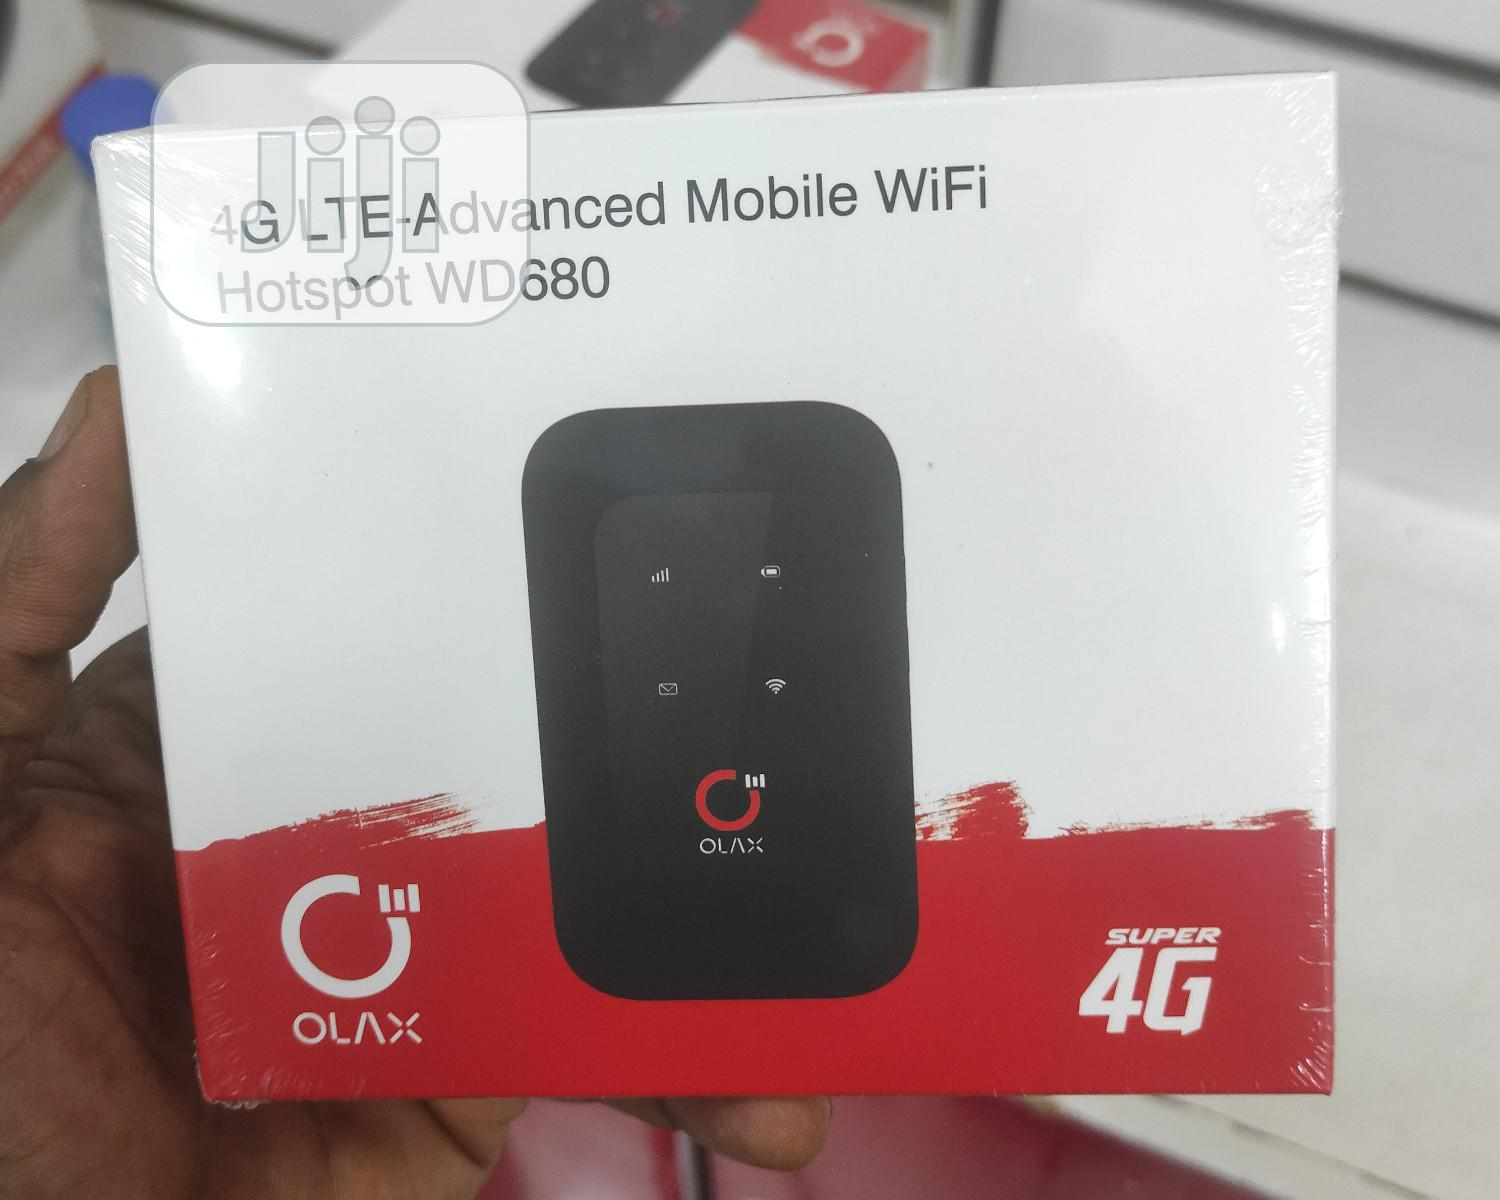 Spectranet, Smile, MTN Etc 4G LTE Wifi Modem | Networking Products for sale in Ikeja, Lagos State, Nigeria